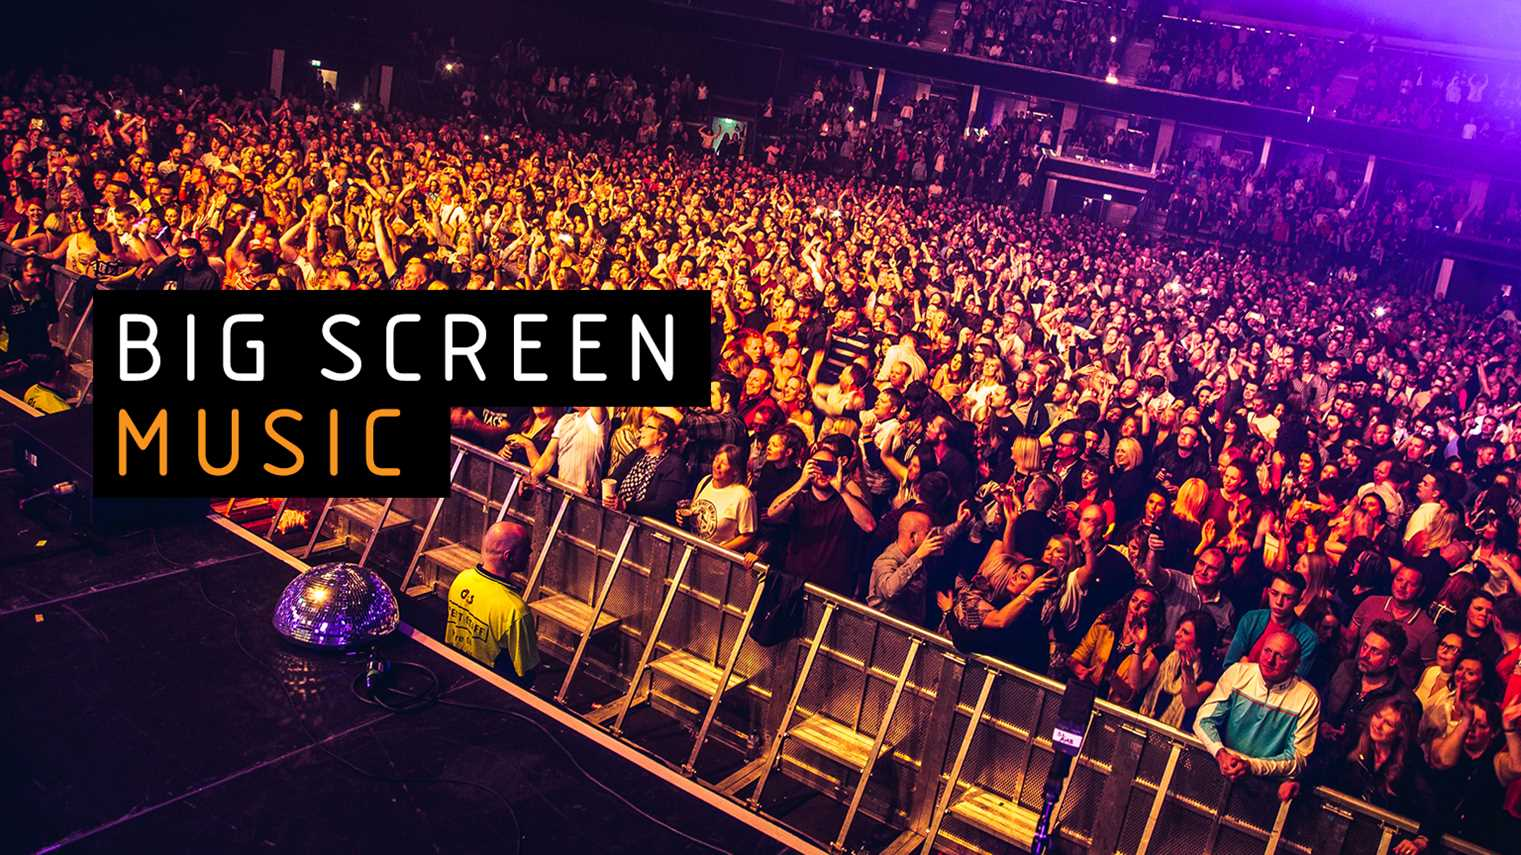 Big Screen Music